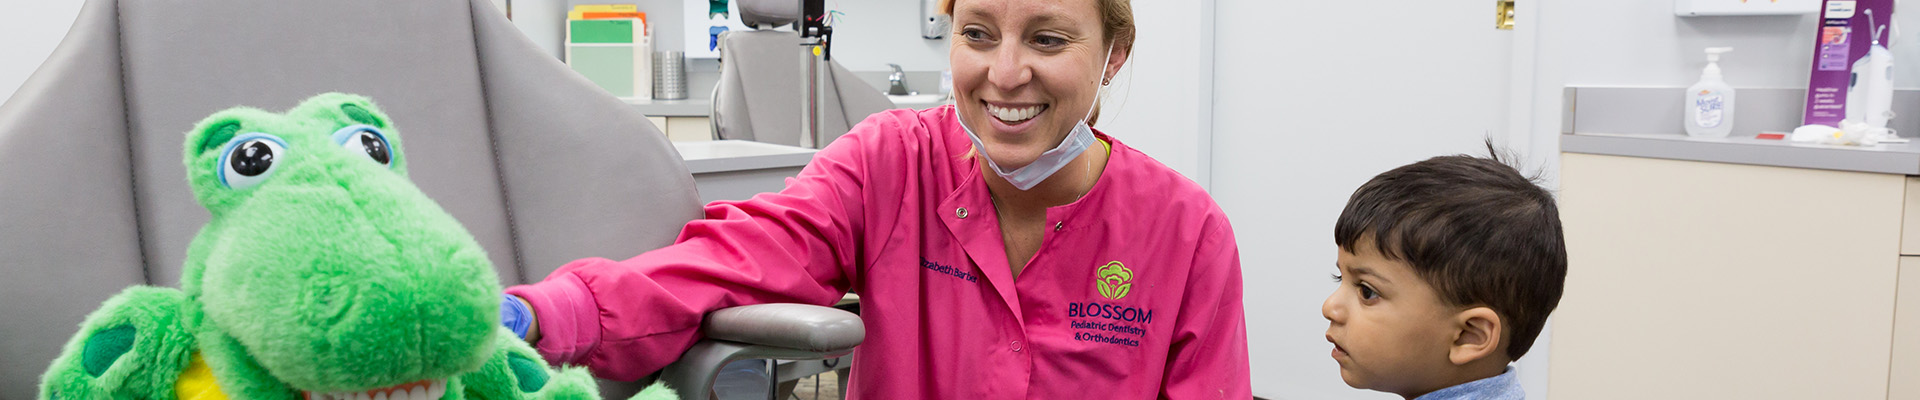 Dr. Elizabeth Malette Barber with young boy patient at Blossom Pediatric Dental and Orthodontics